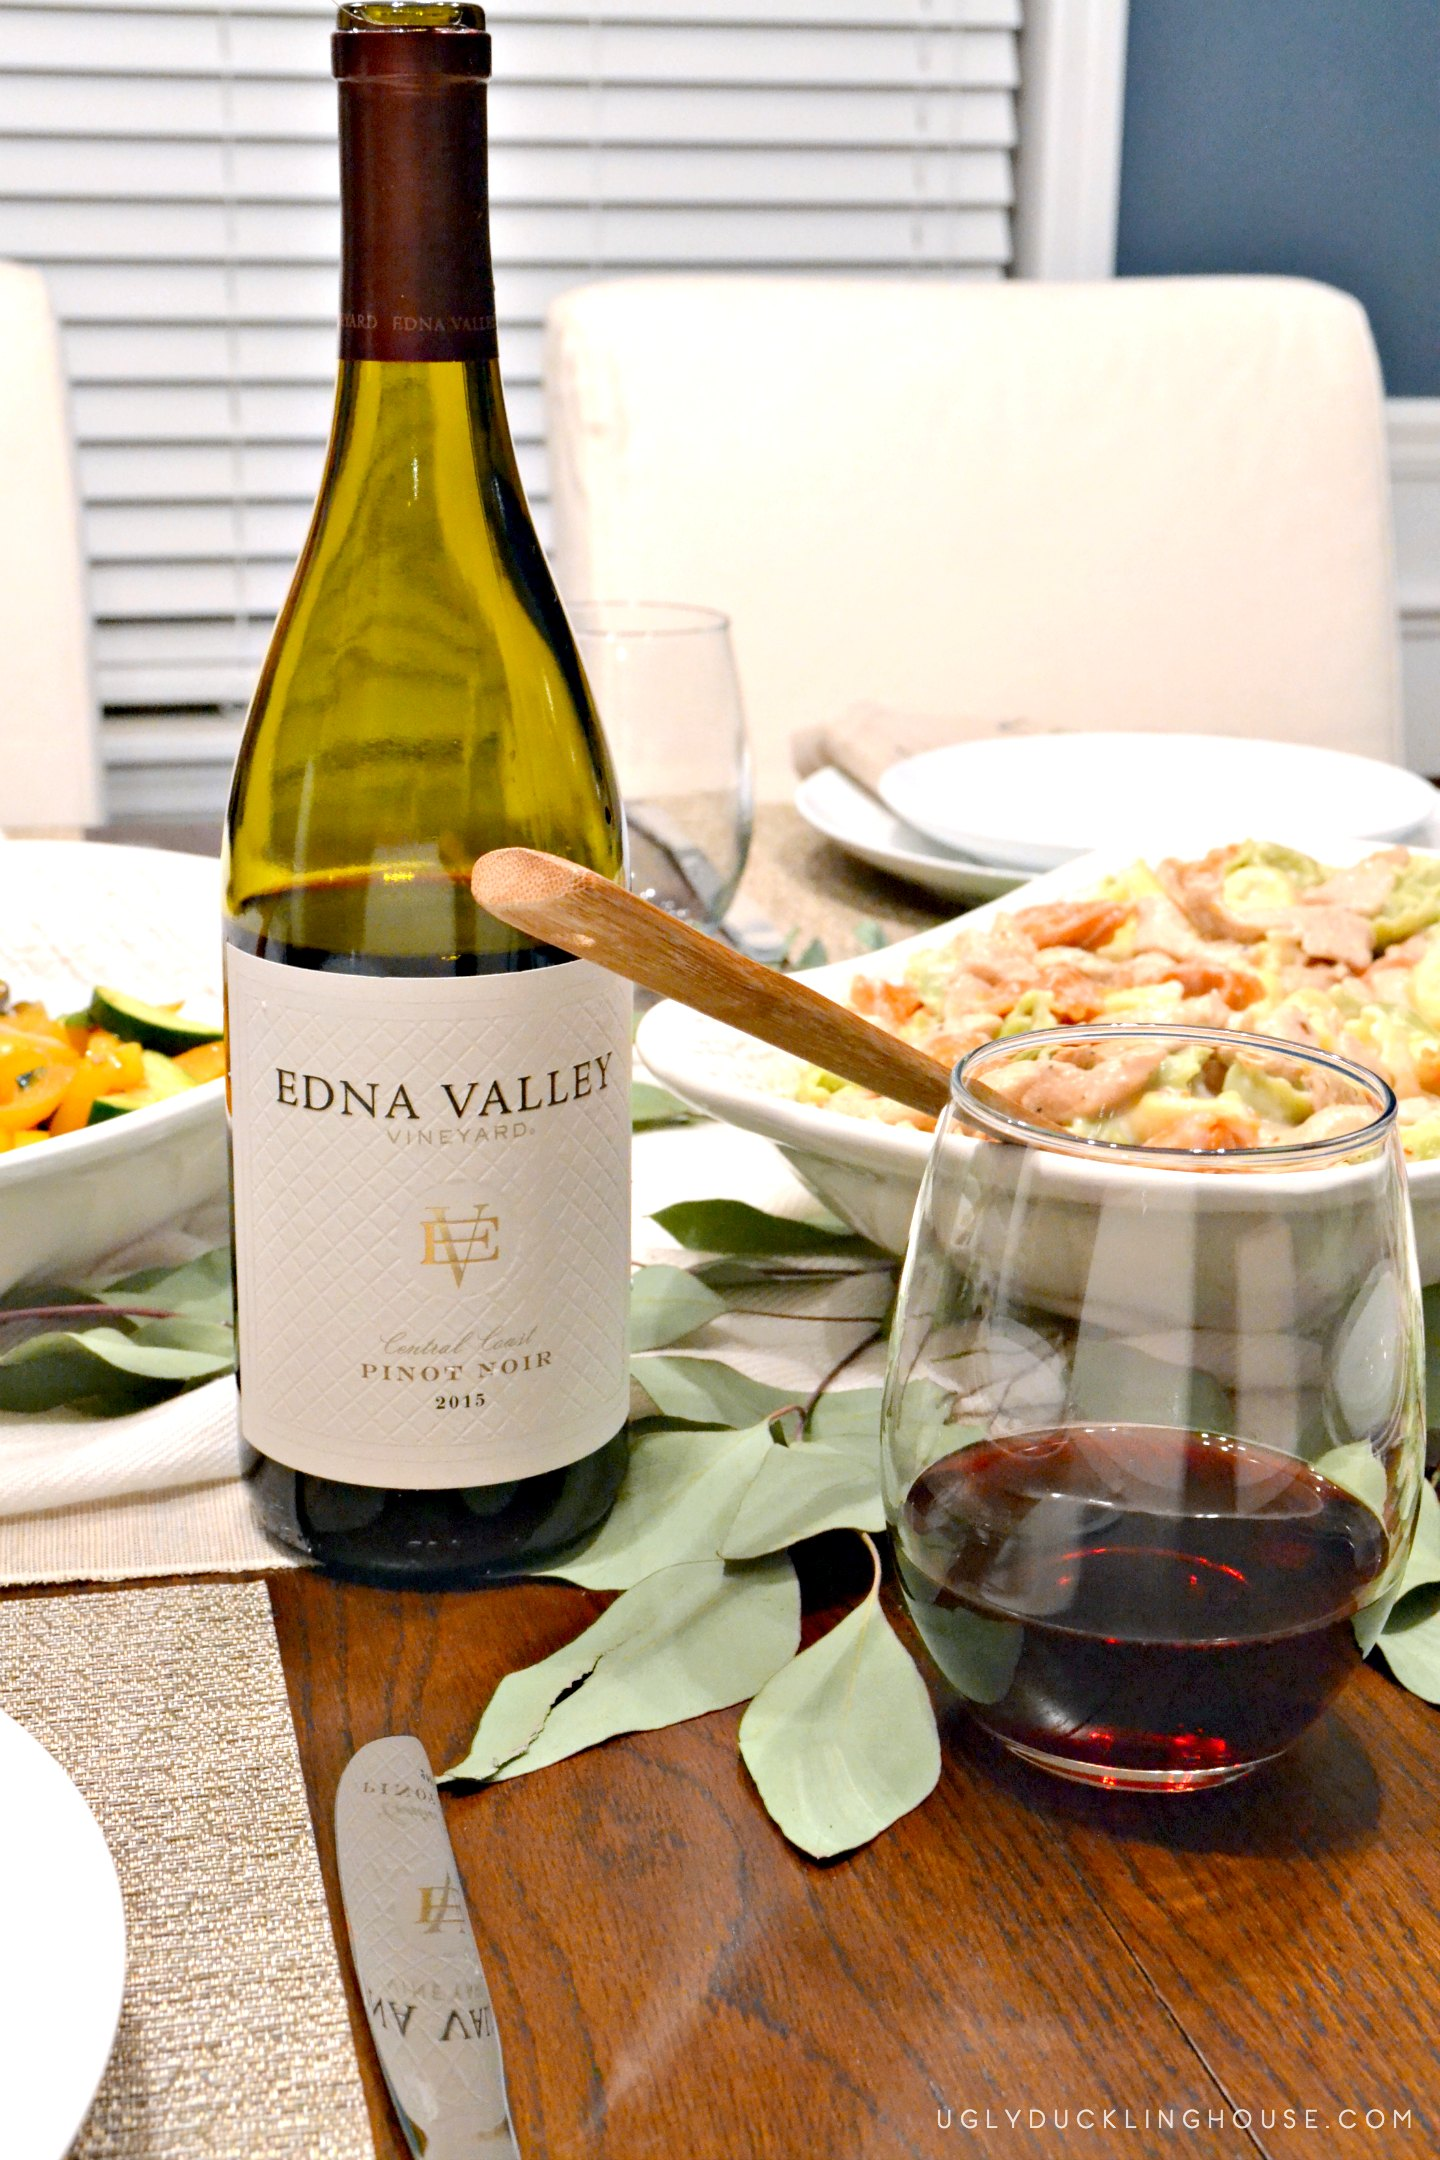 enjoying Edna Valley at home while entertaining friends and family